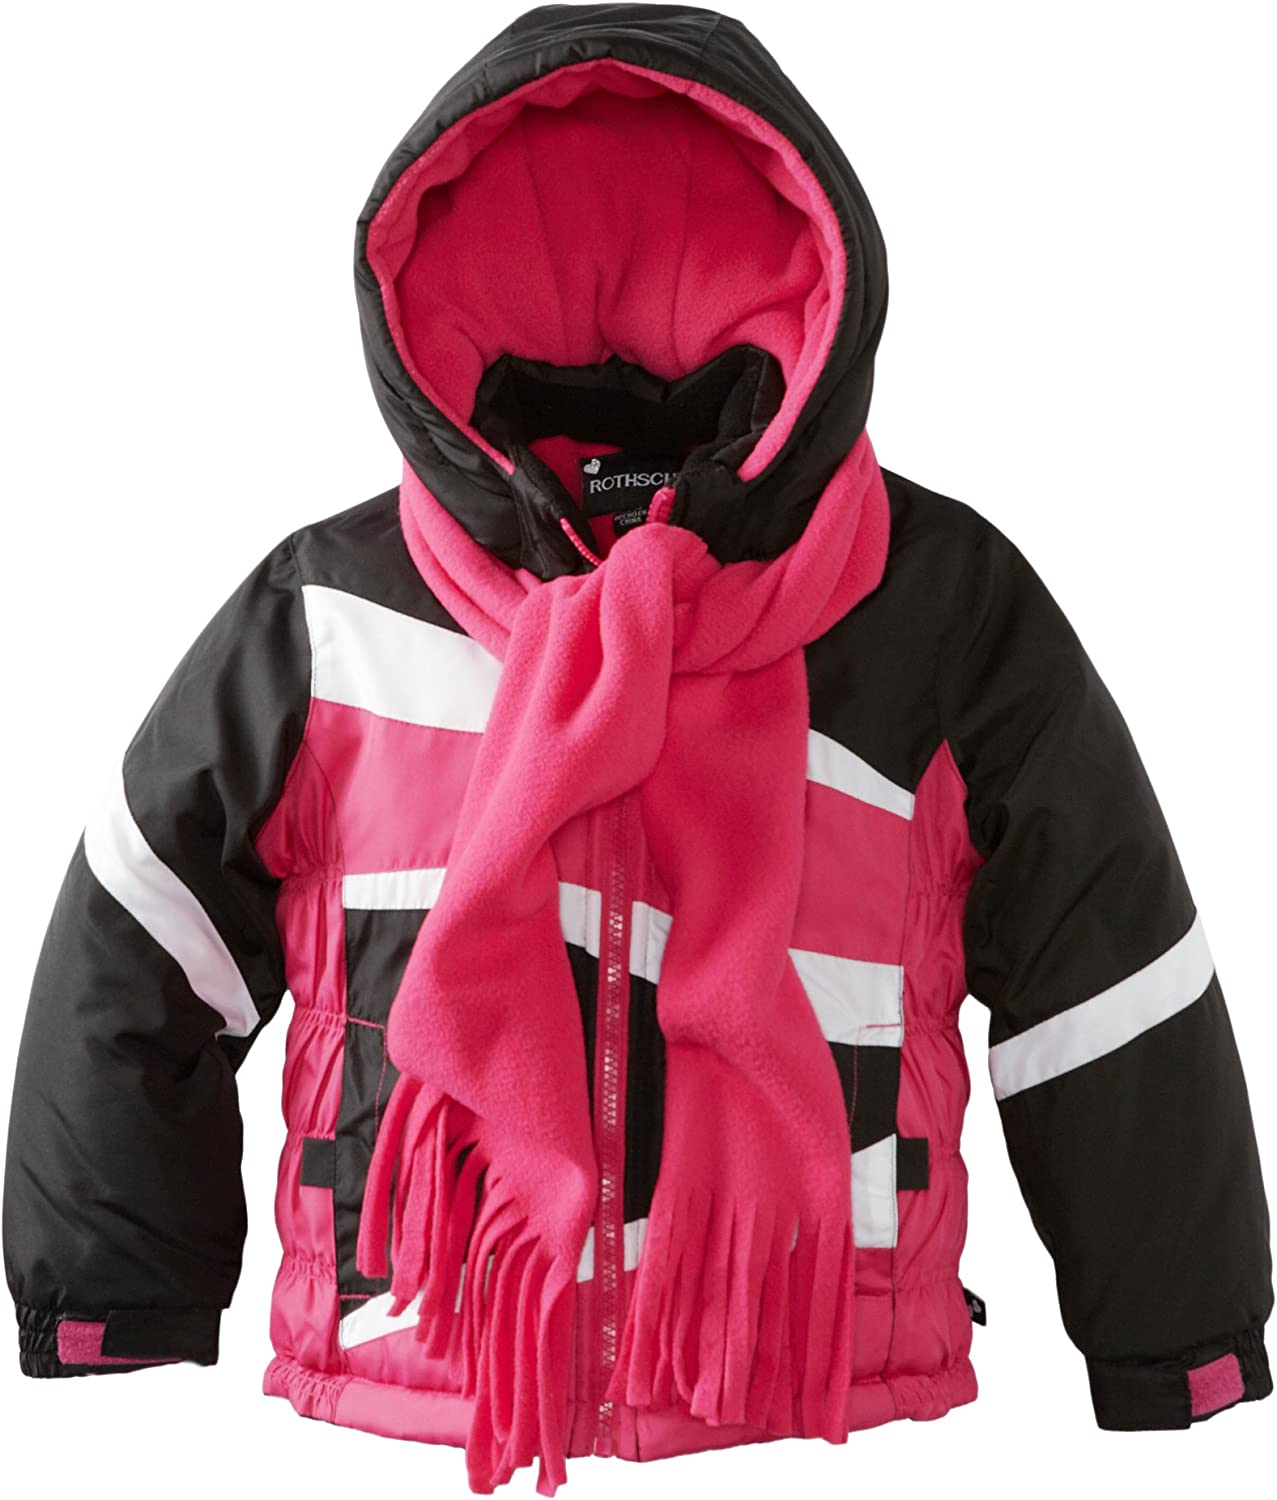 Rothschild Little Girls' Rouched Colorblock Jacket